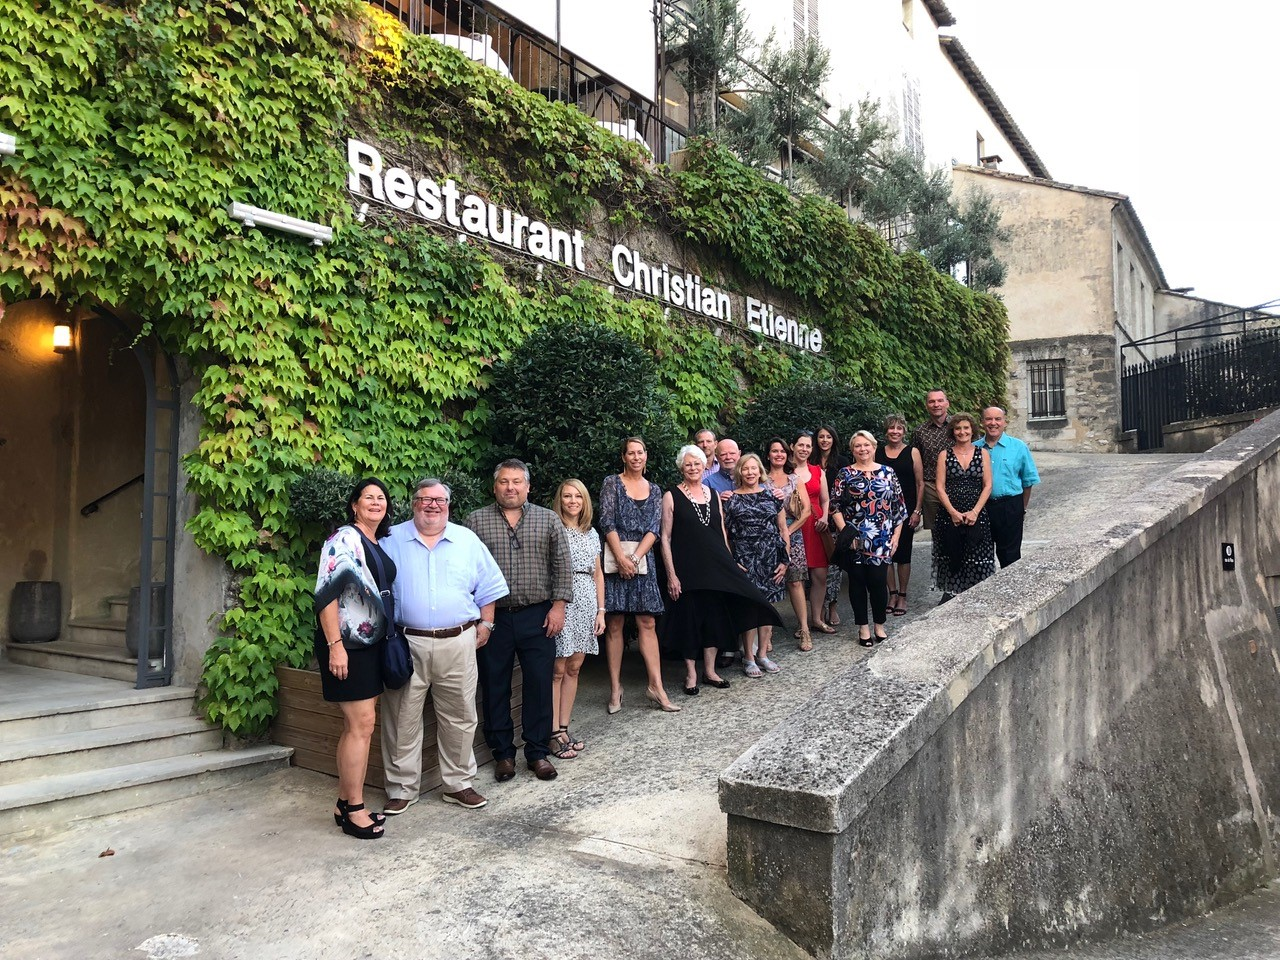 Guests taking group photo in front of a restaurant